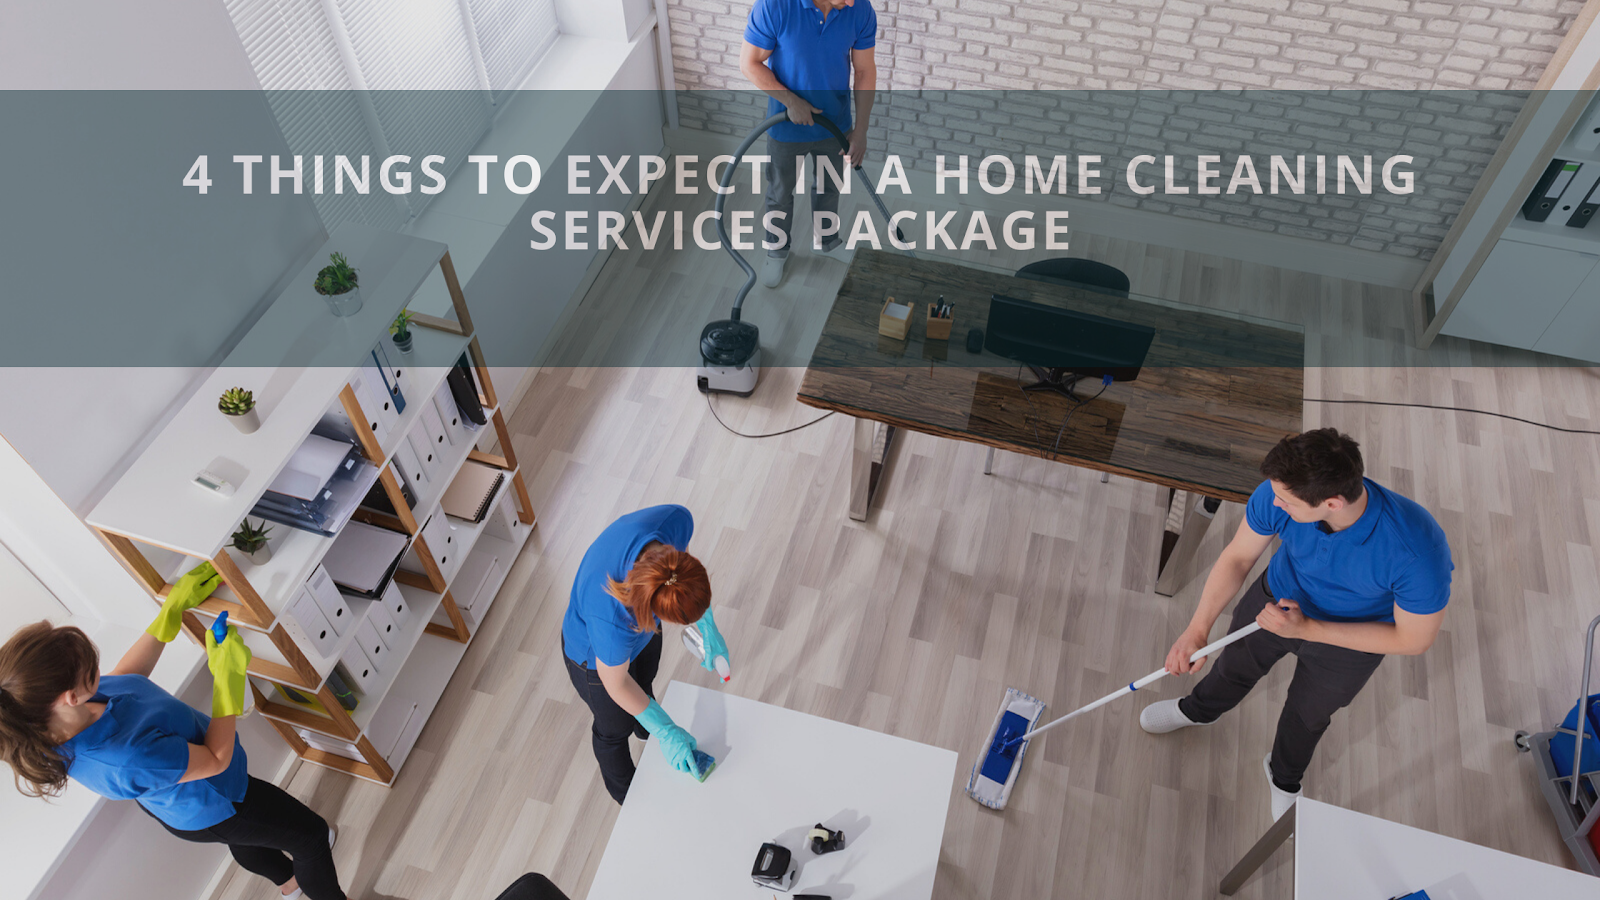 4-Things-to-Expect-in-a-Home-Cleaning-Services-Package